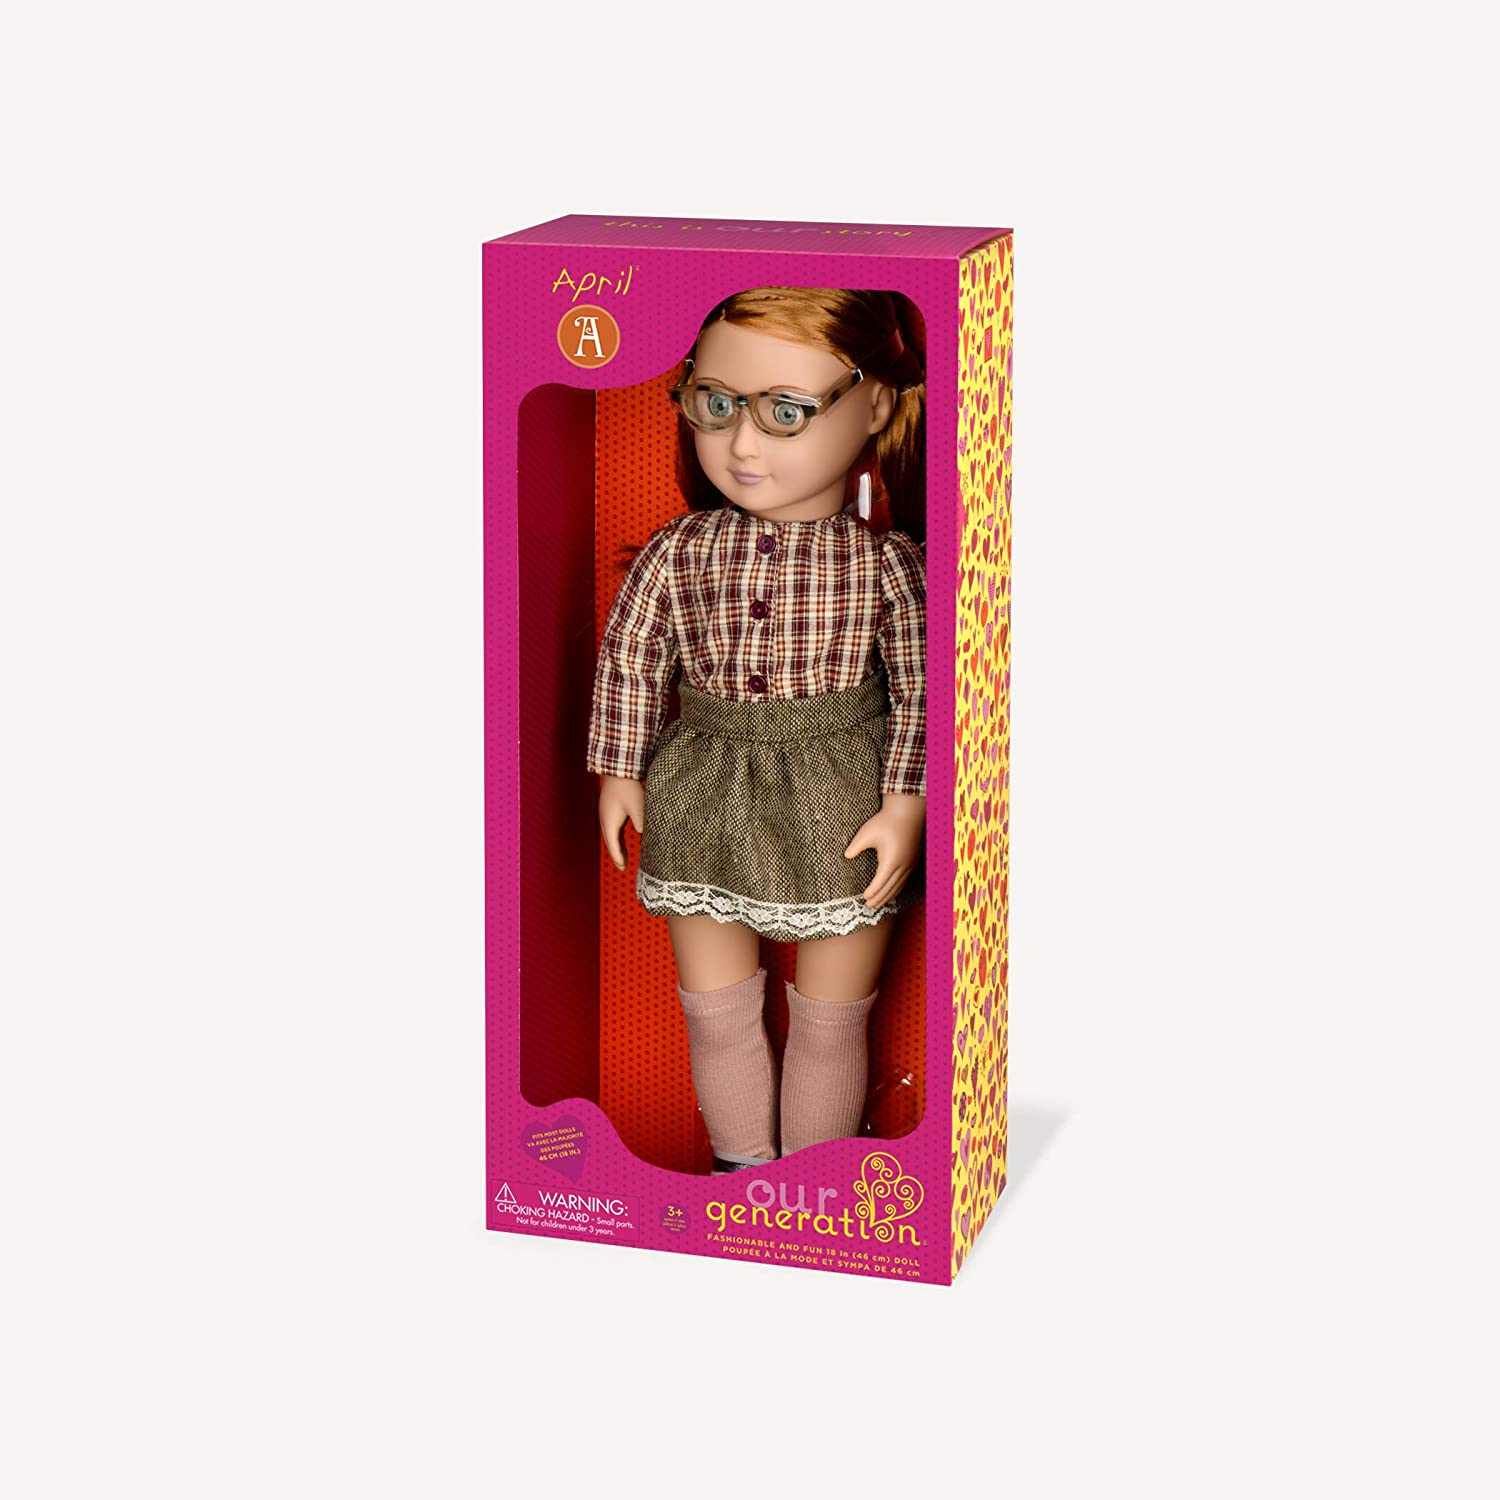 Our Generation Doll By Battat April 18 inch Regular Non-posable Fashion doll for ages 3 and up